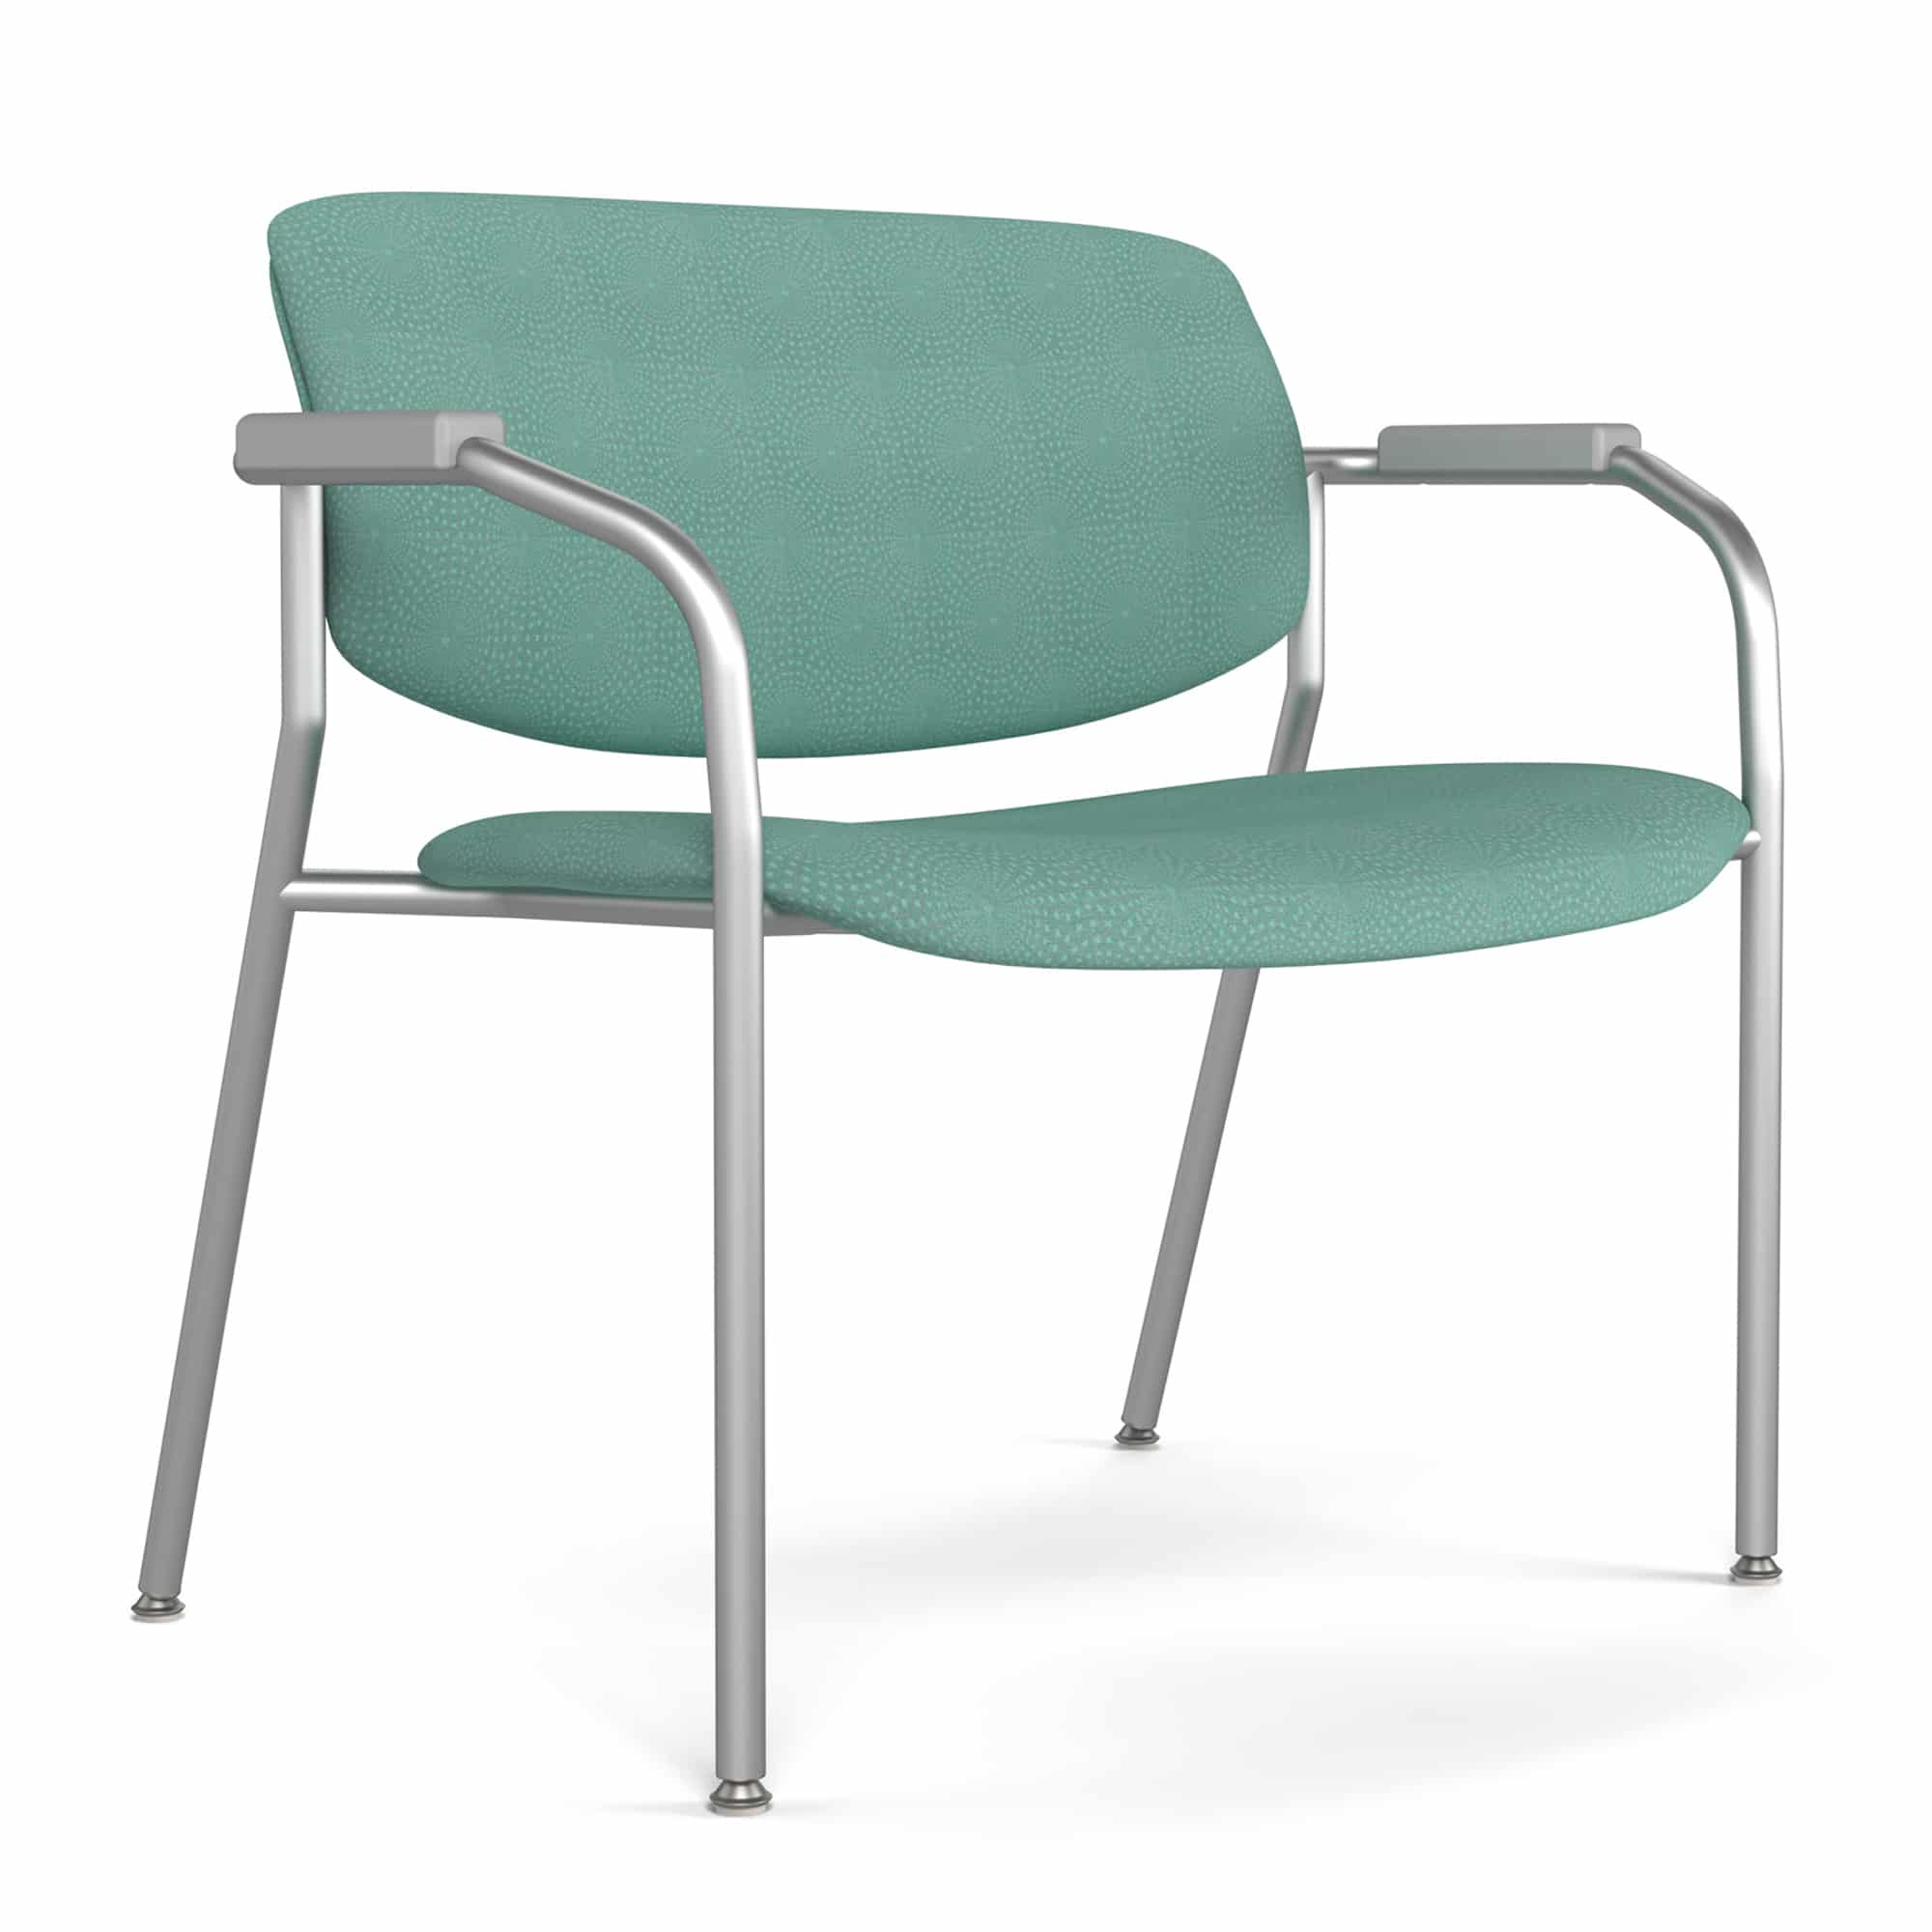 ergonomic chair guidelines herman miller office parts pull up a lets talk about plus size chairs